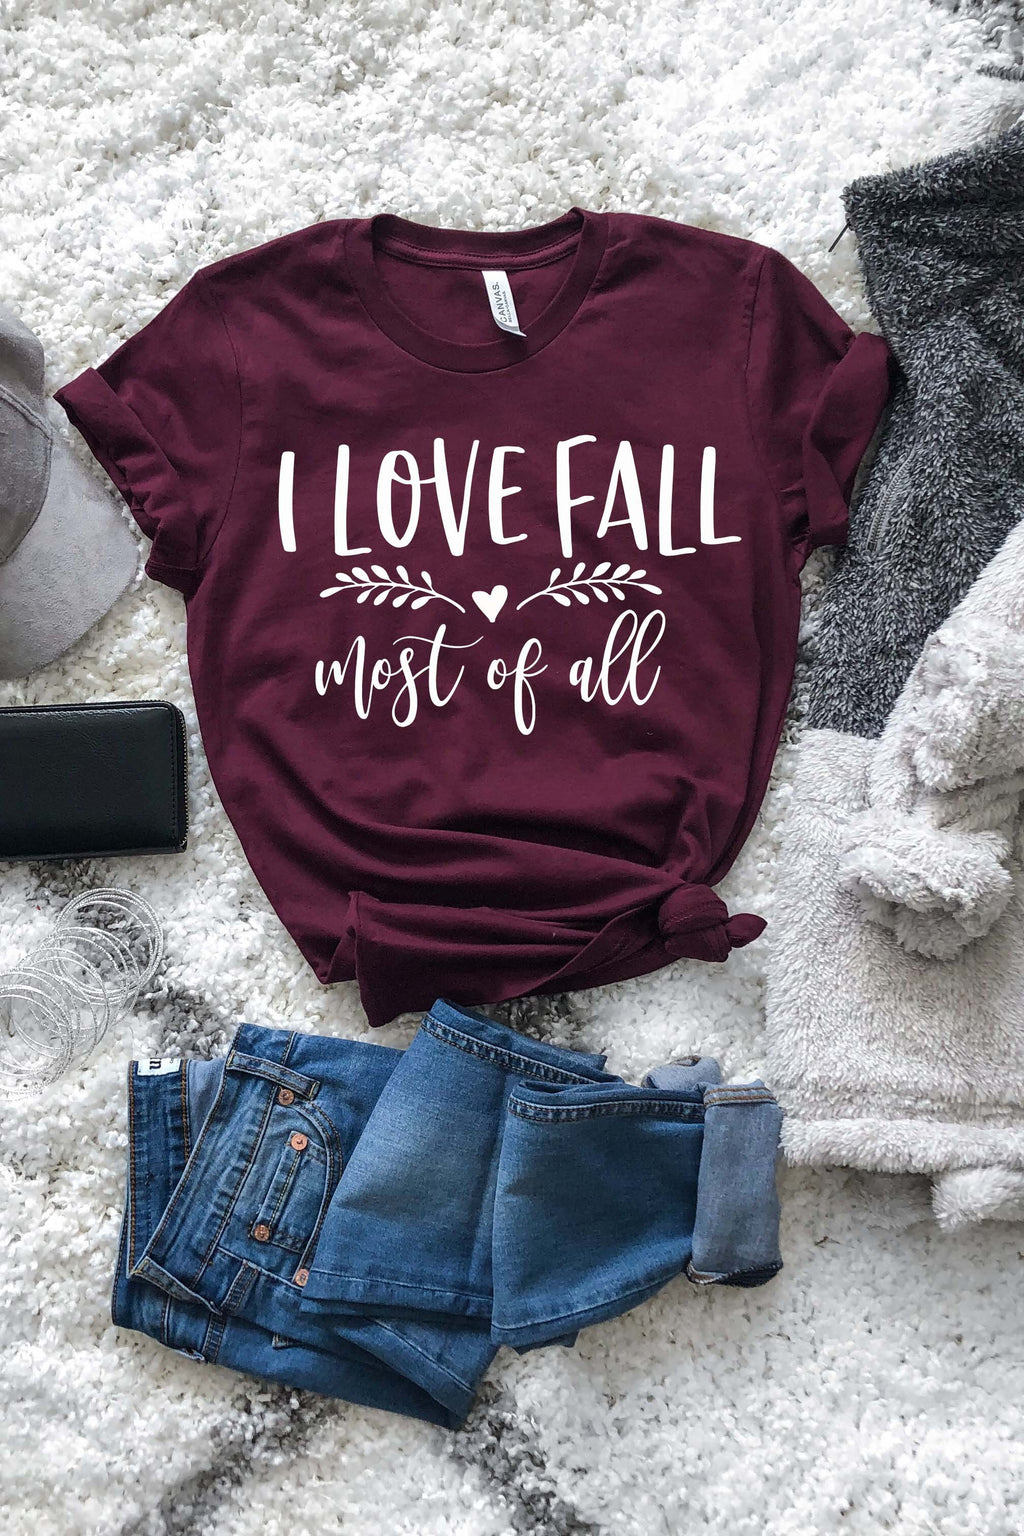 I Love Fall Most Of All Tee - women's boutique clothing Strong Confident You